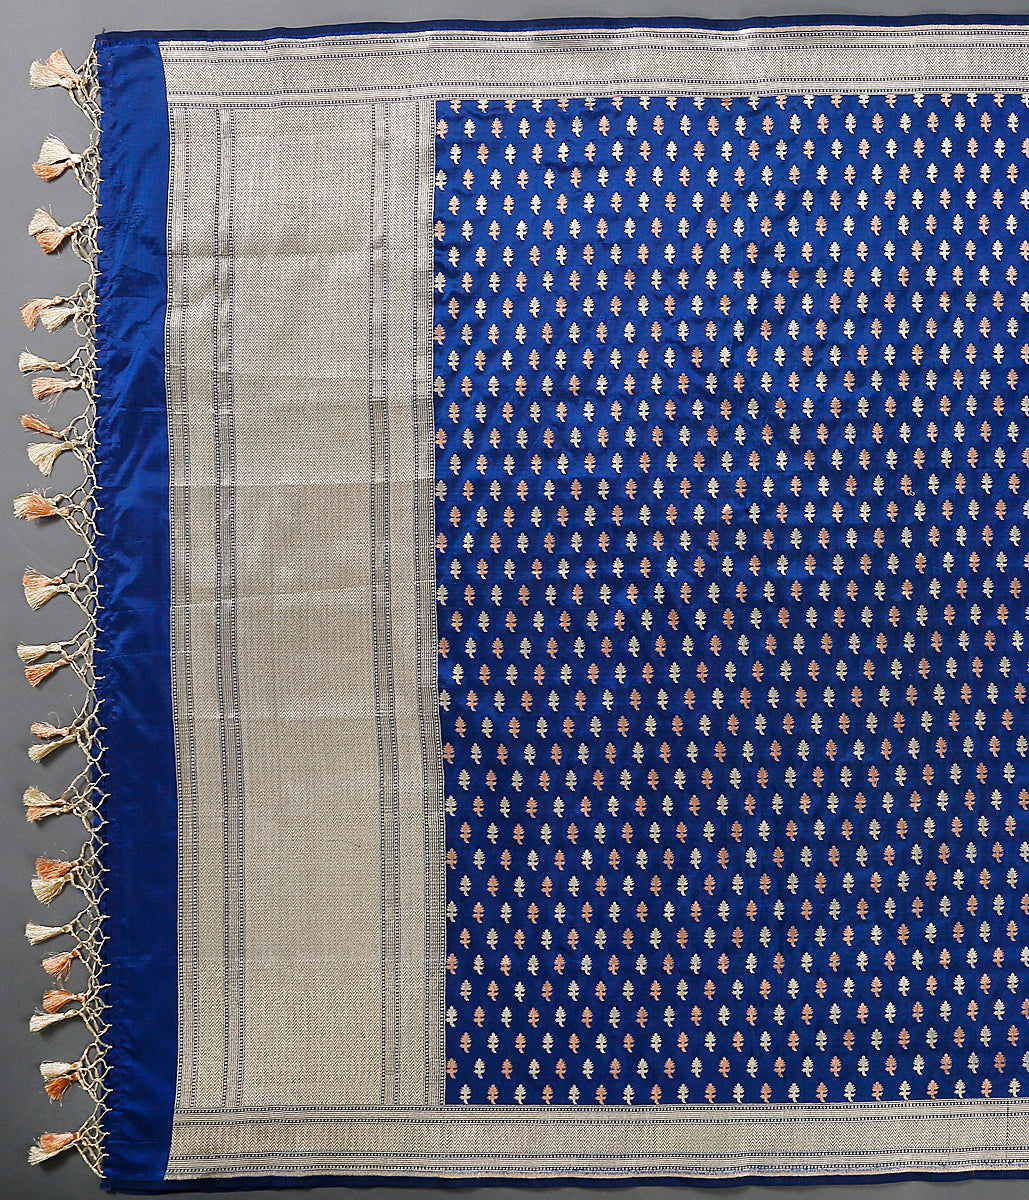 Blue katan silk dupatta with leaf motifs woven in gold and copper tone zari